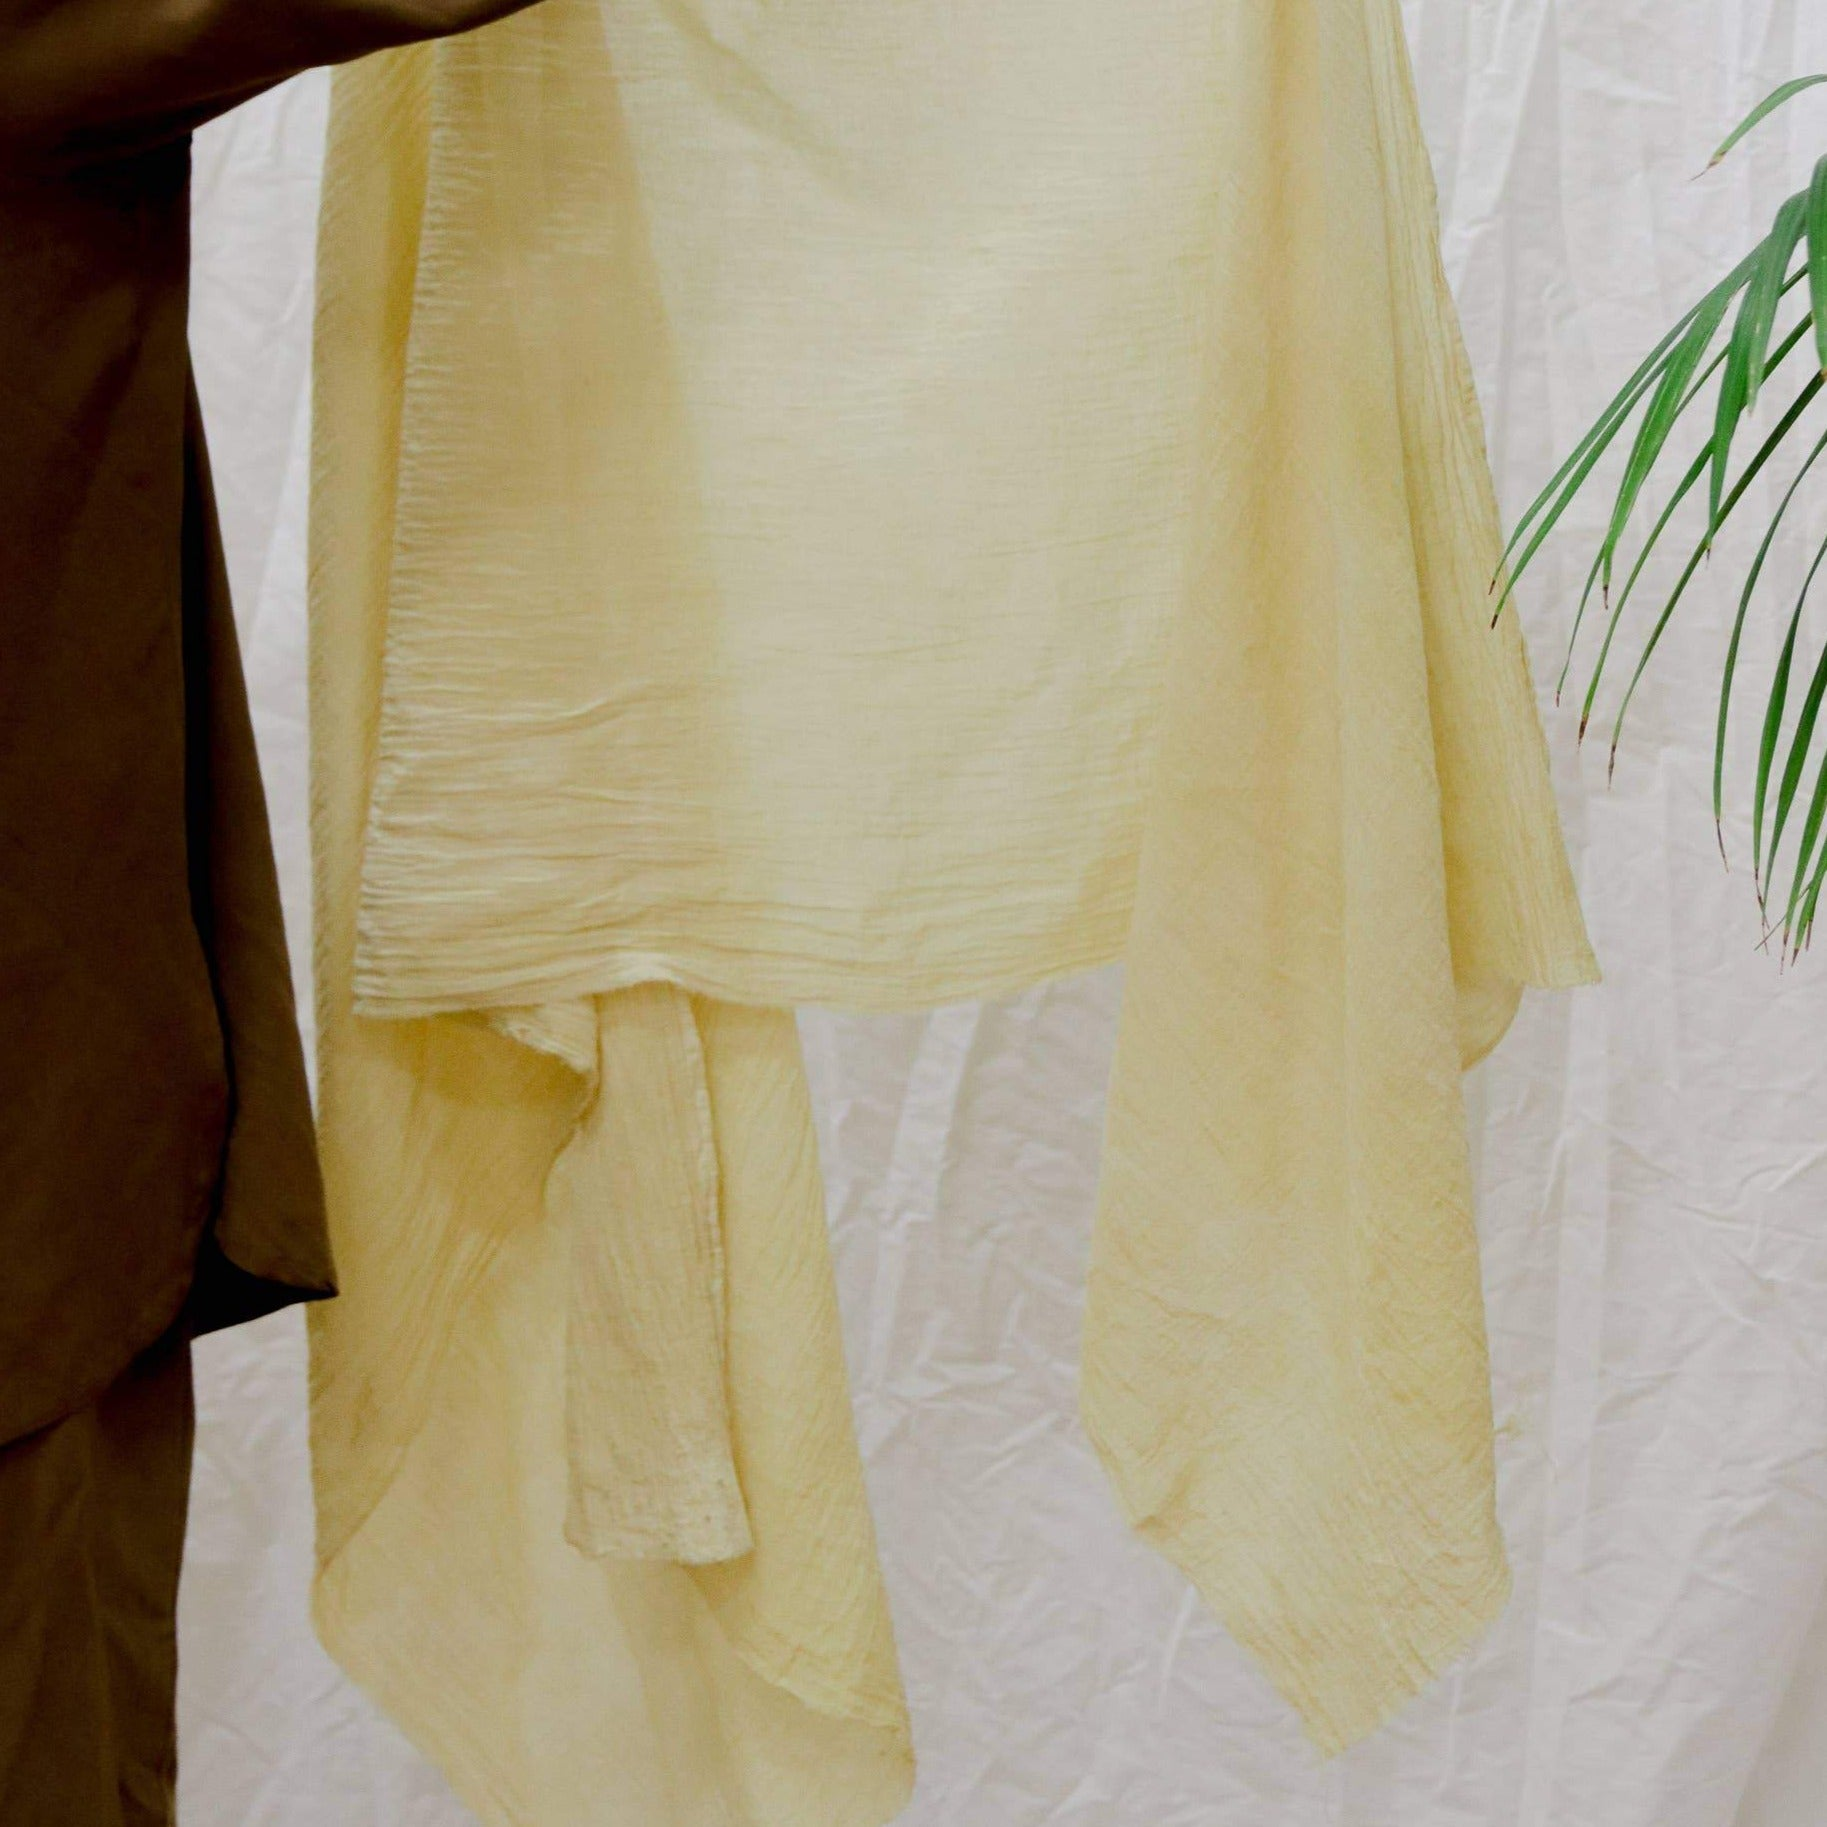 Plant Dyed Cotton Gauze Scarf - Lemon Yellow, Rosemarine Textiles, Handcrafted Home Goods and Gifts